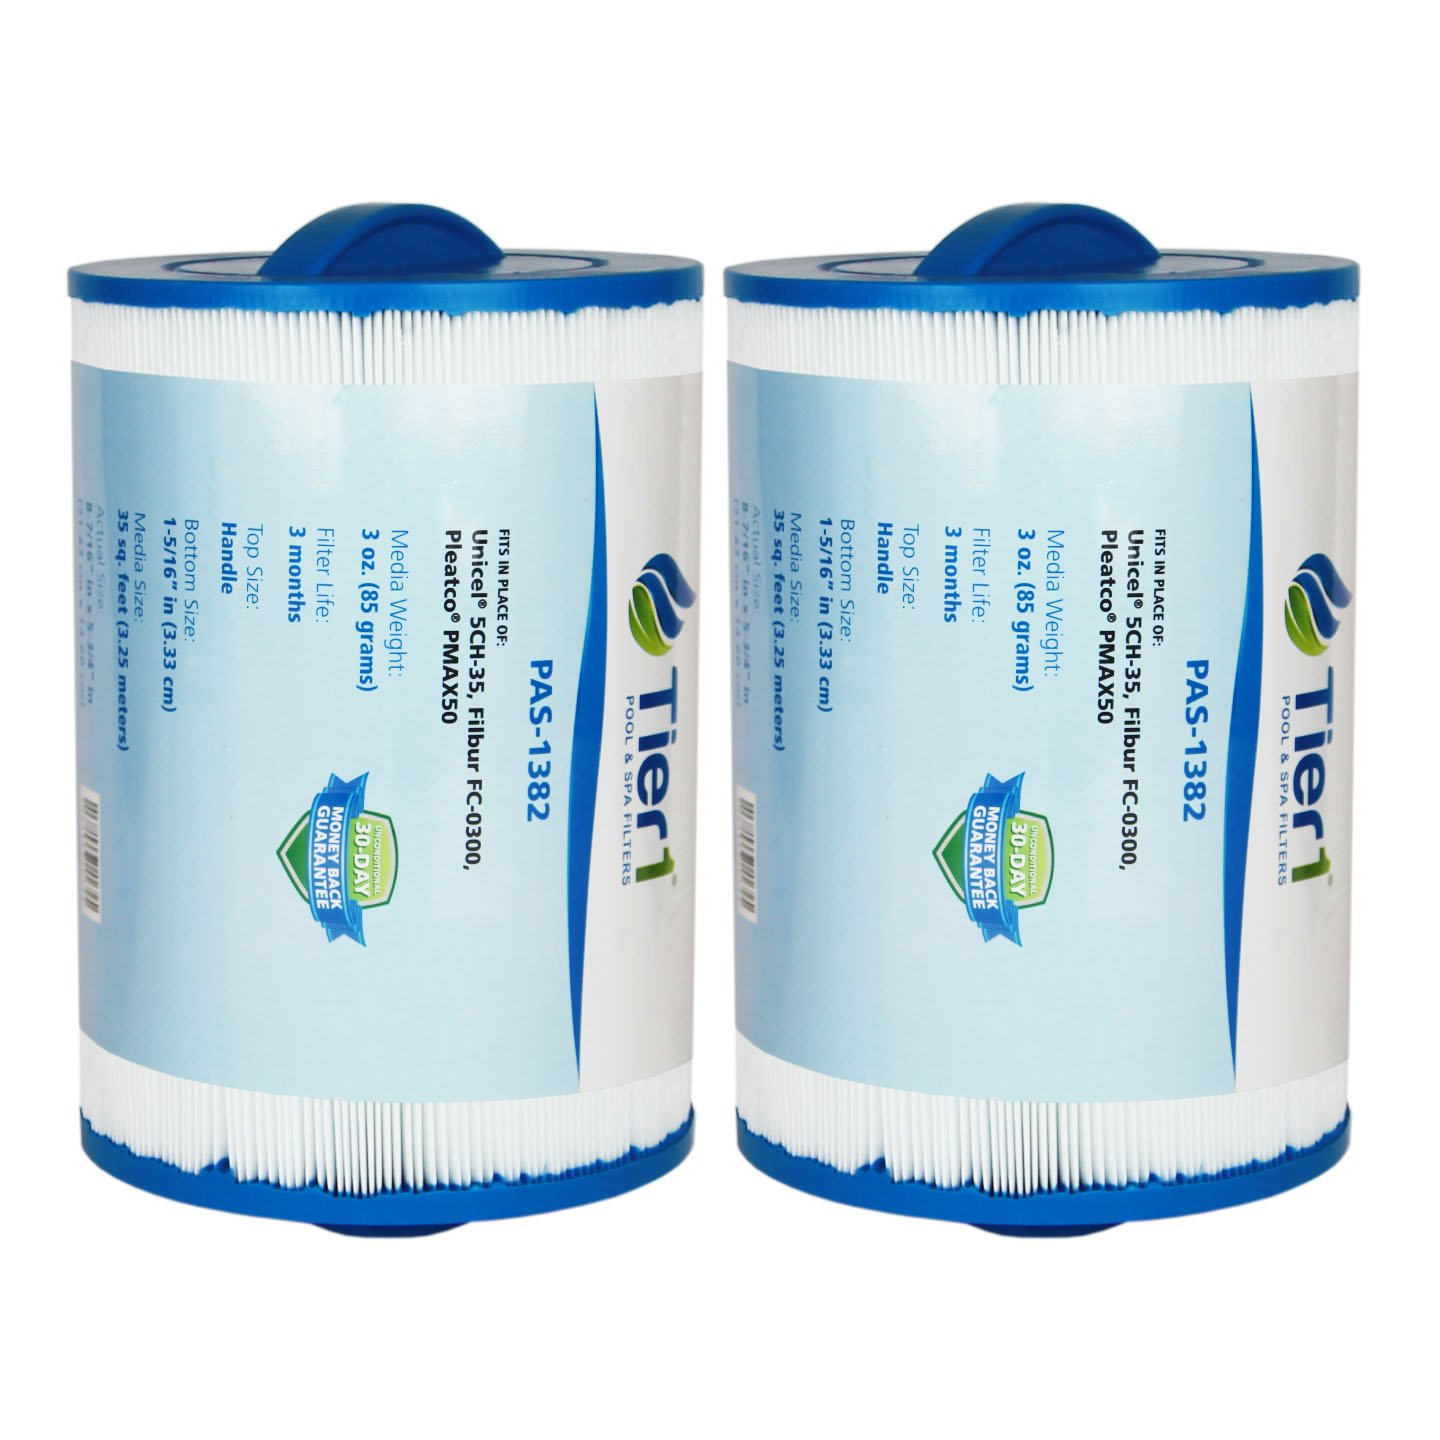 Tier1 Replacement for Maax Spas of Canada PAS35P, Pleatco PMAX50, Filbur FC-0300, Unicel 5CH-35 Filter Cartridge for Maax Spas of Canada